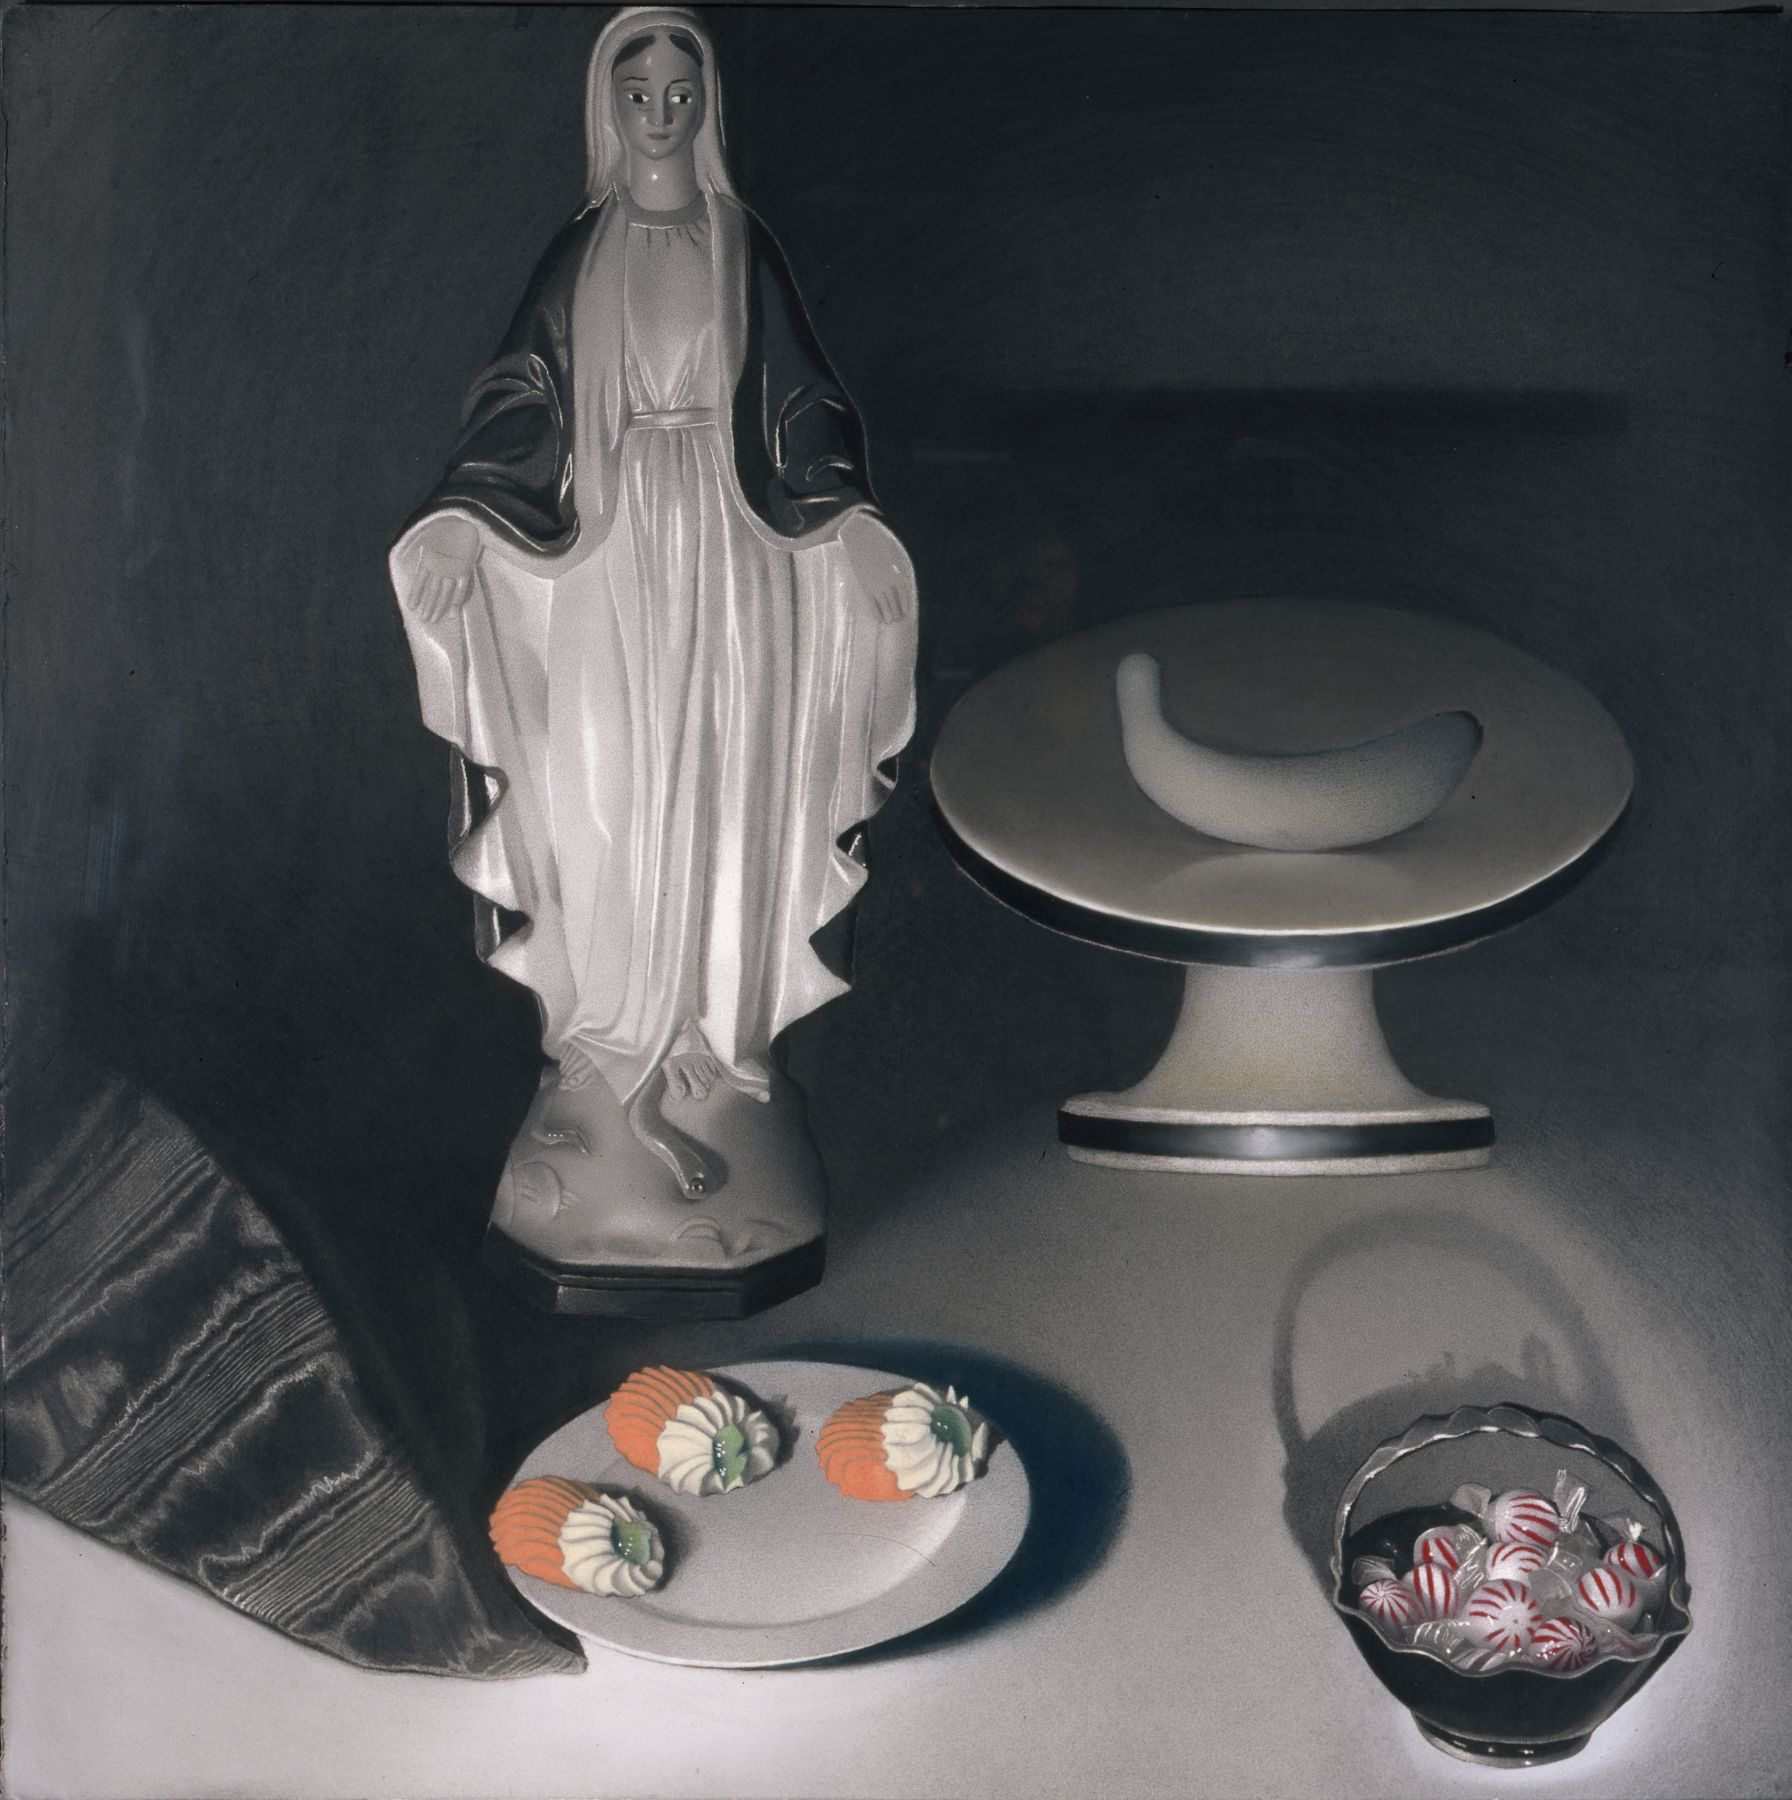 Susan Hauptman, Still Life, 1995, charcoal on paper, 40 x 40 inches